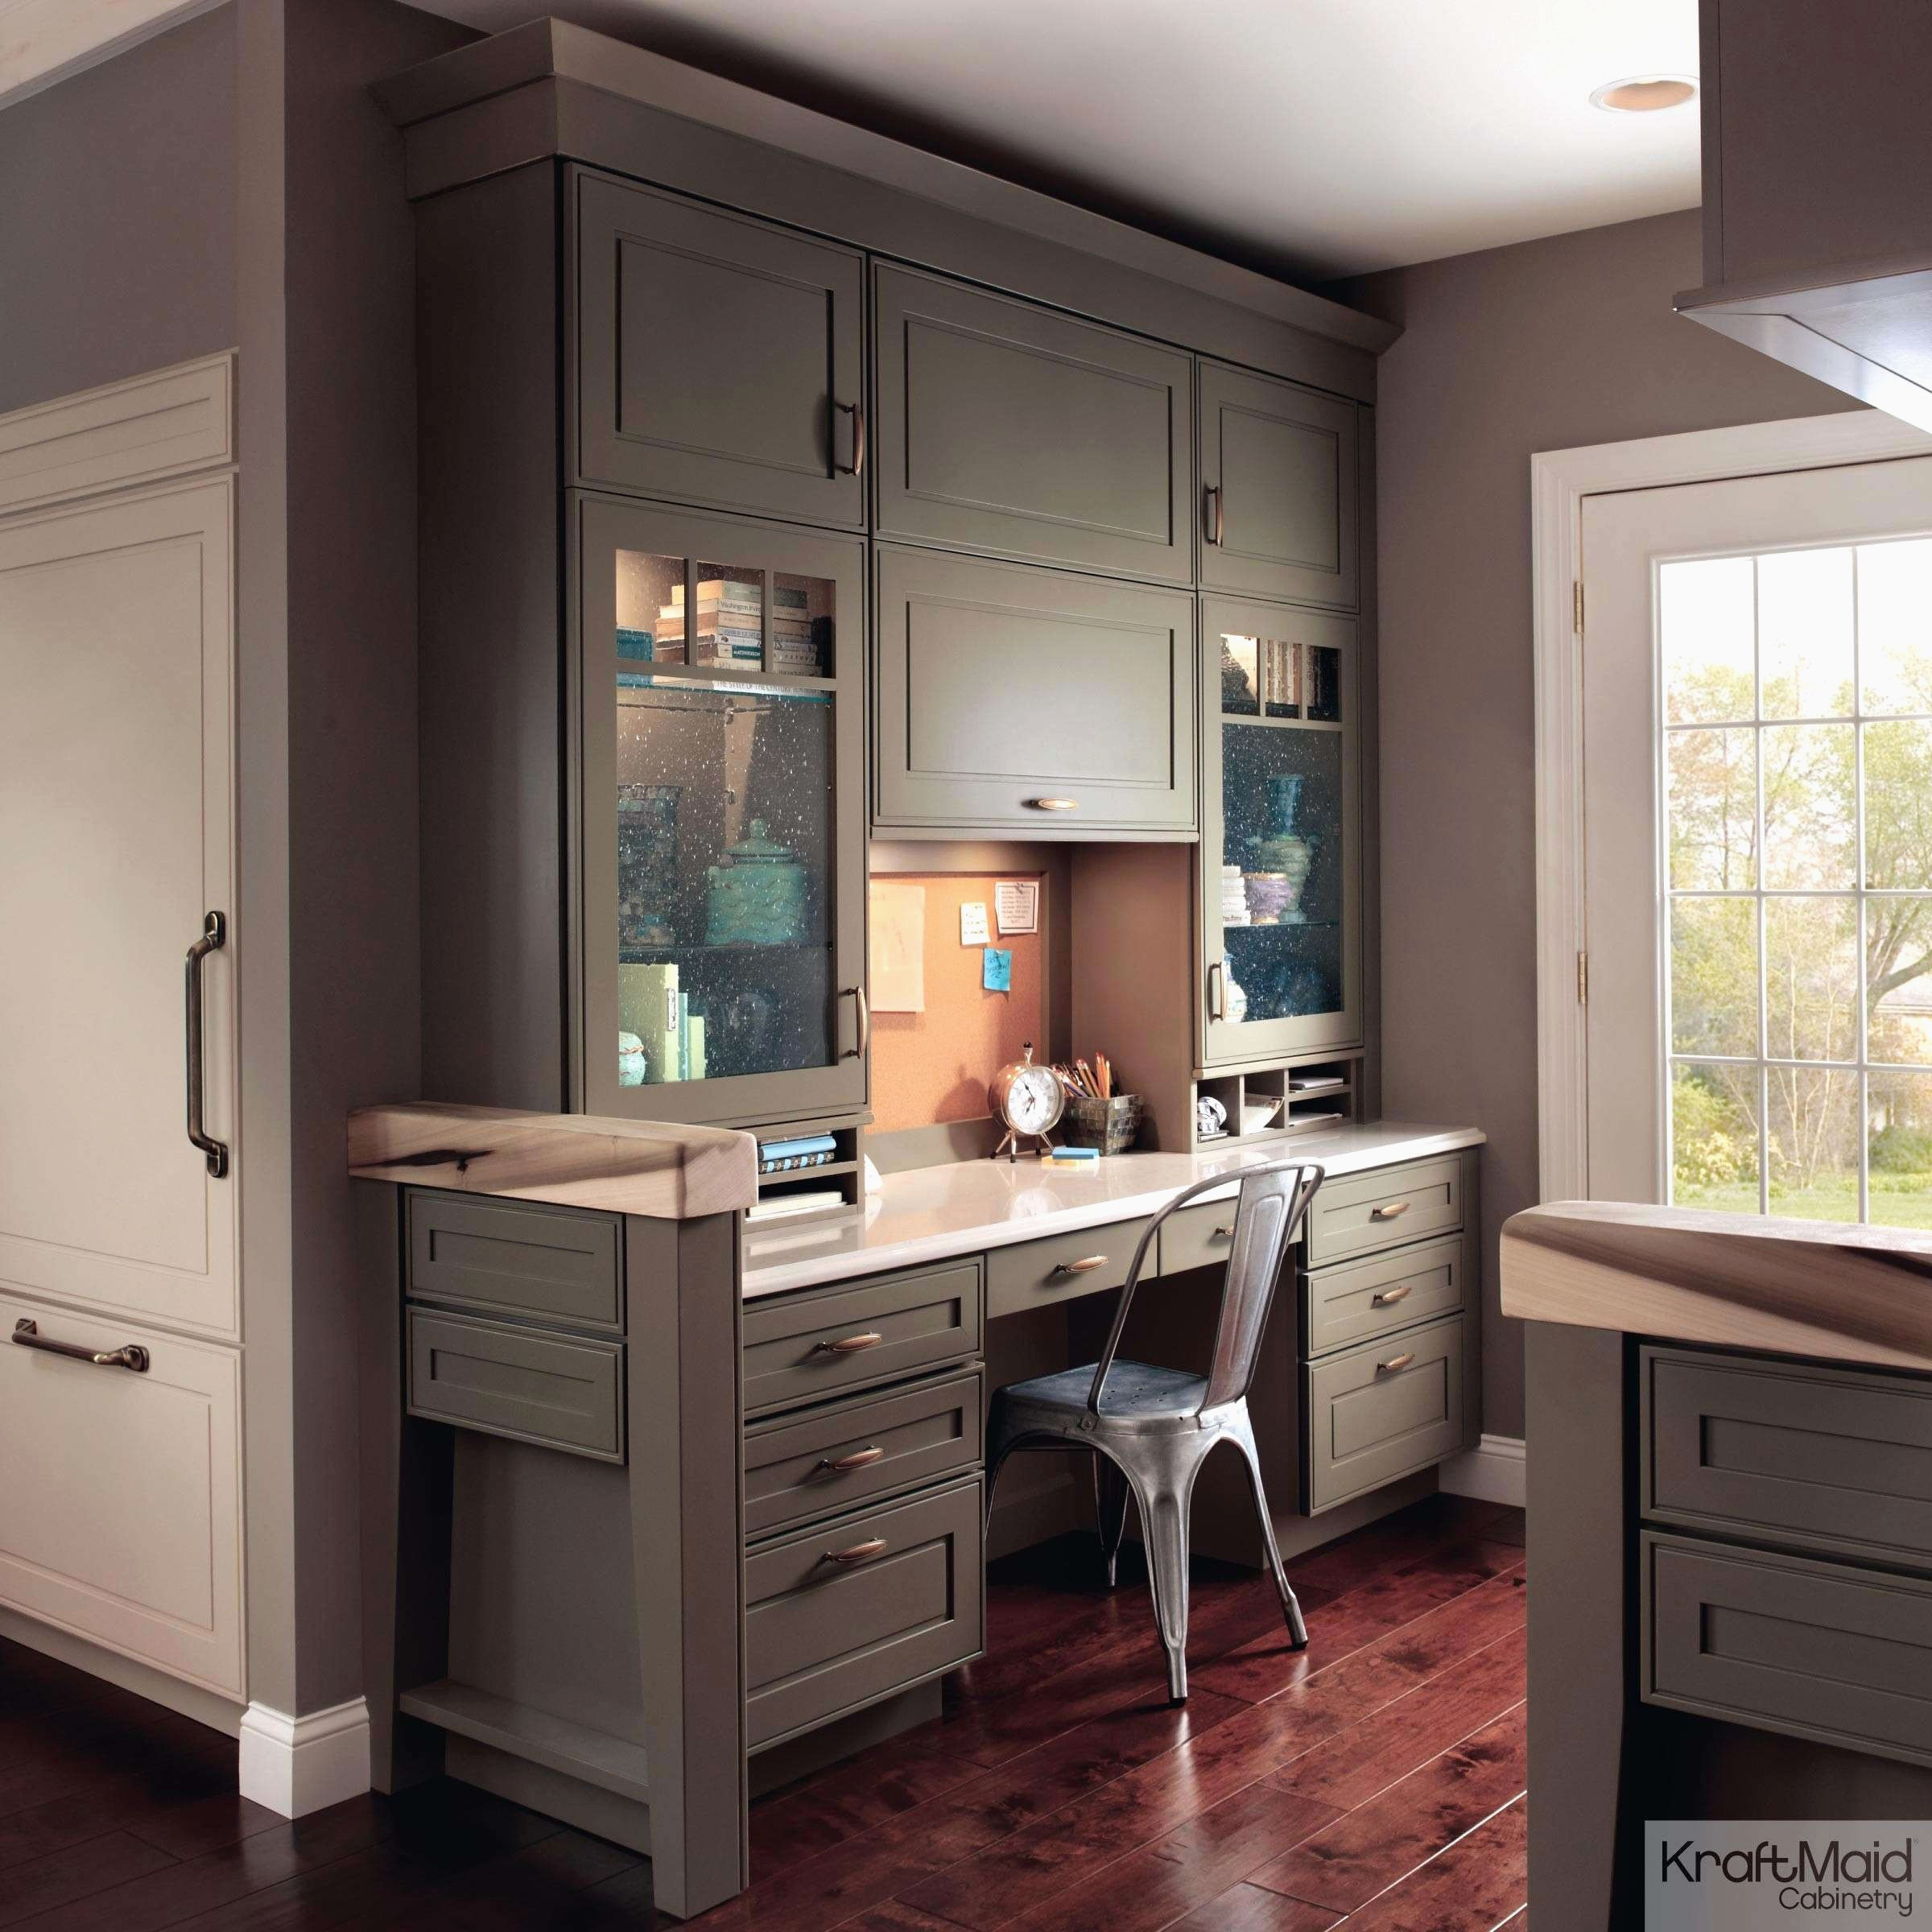 cheap hardwood floor installation of 15 awesome cheap peel and stick vinyl tile peritile within wood floor tile kitchen ideas lovely pickled maple kitchen cabinets awesome kitchen cabinet 0d kitchen